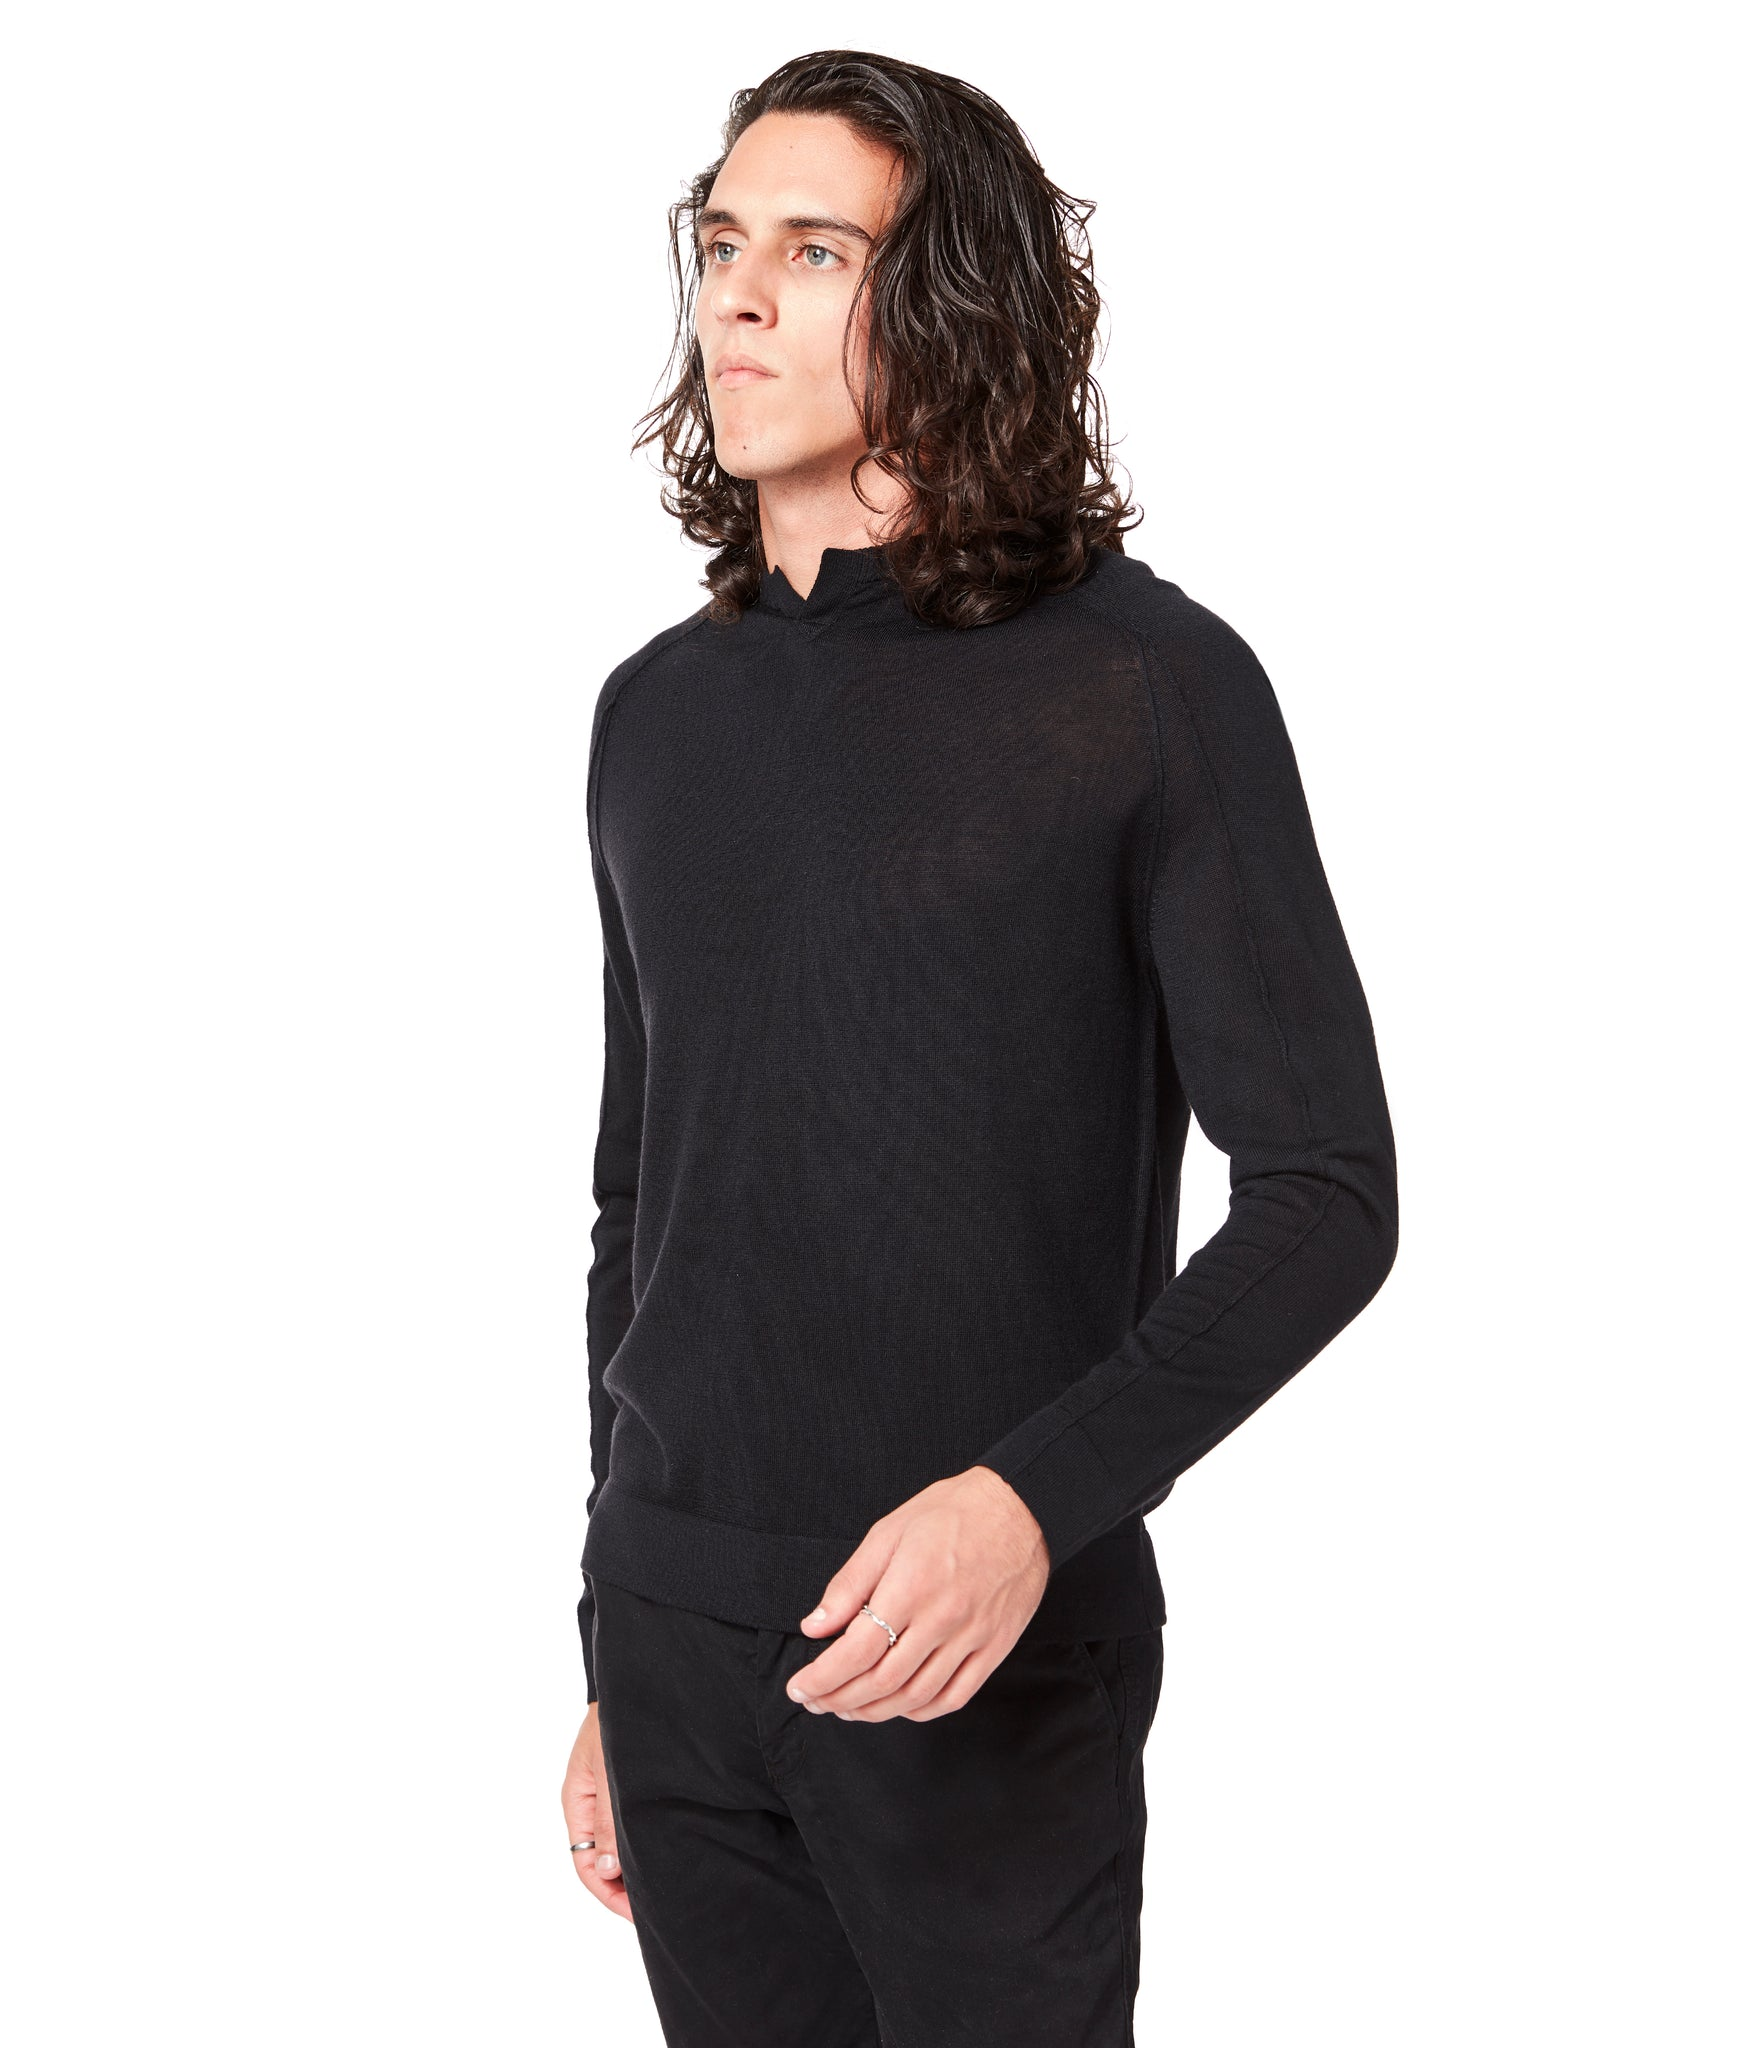 MVP V-Notch Sweater - Black